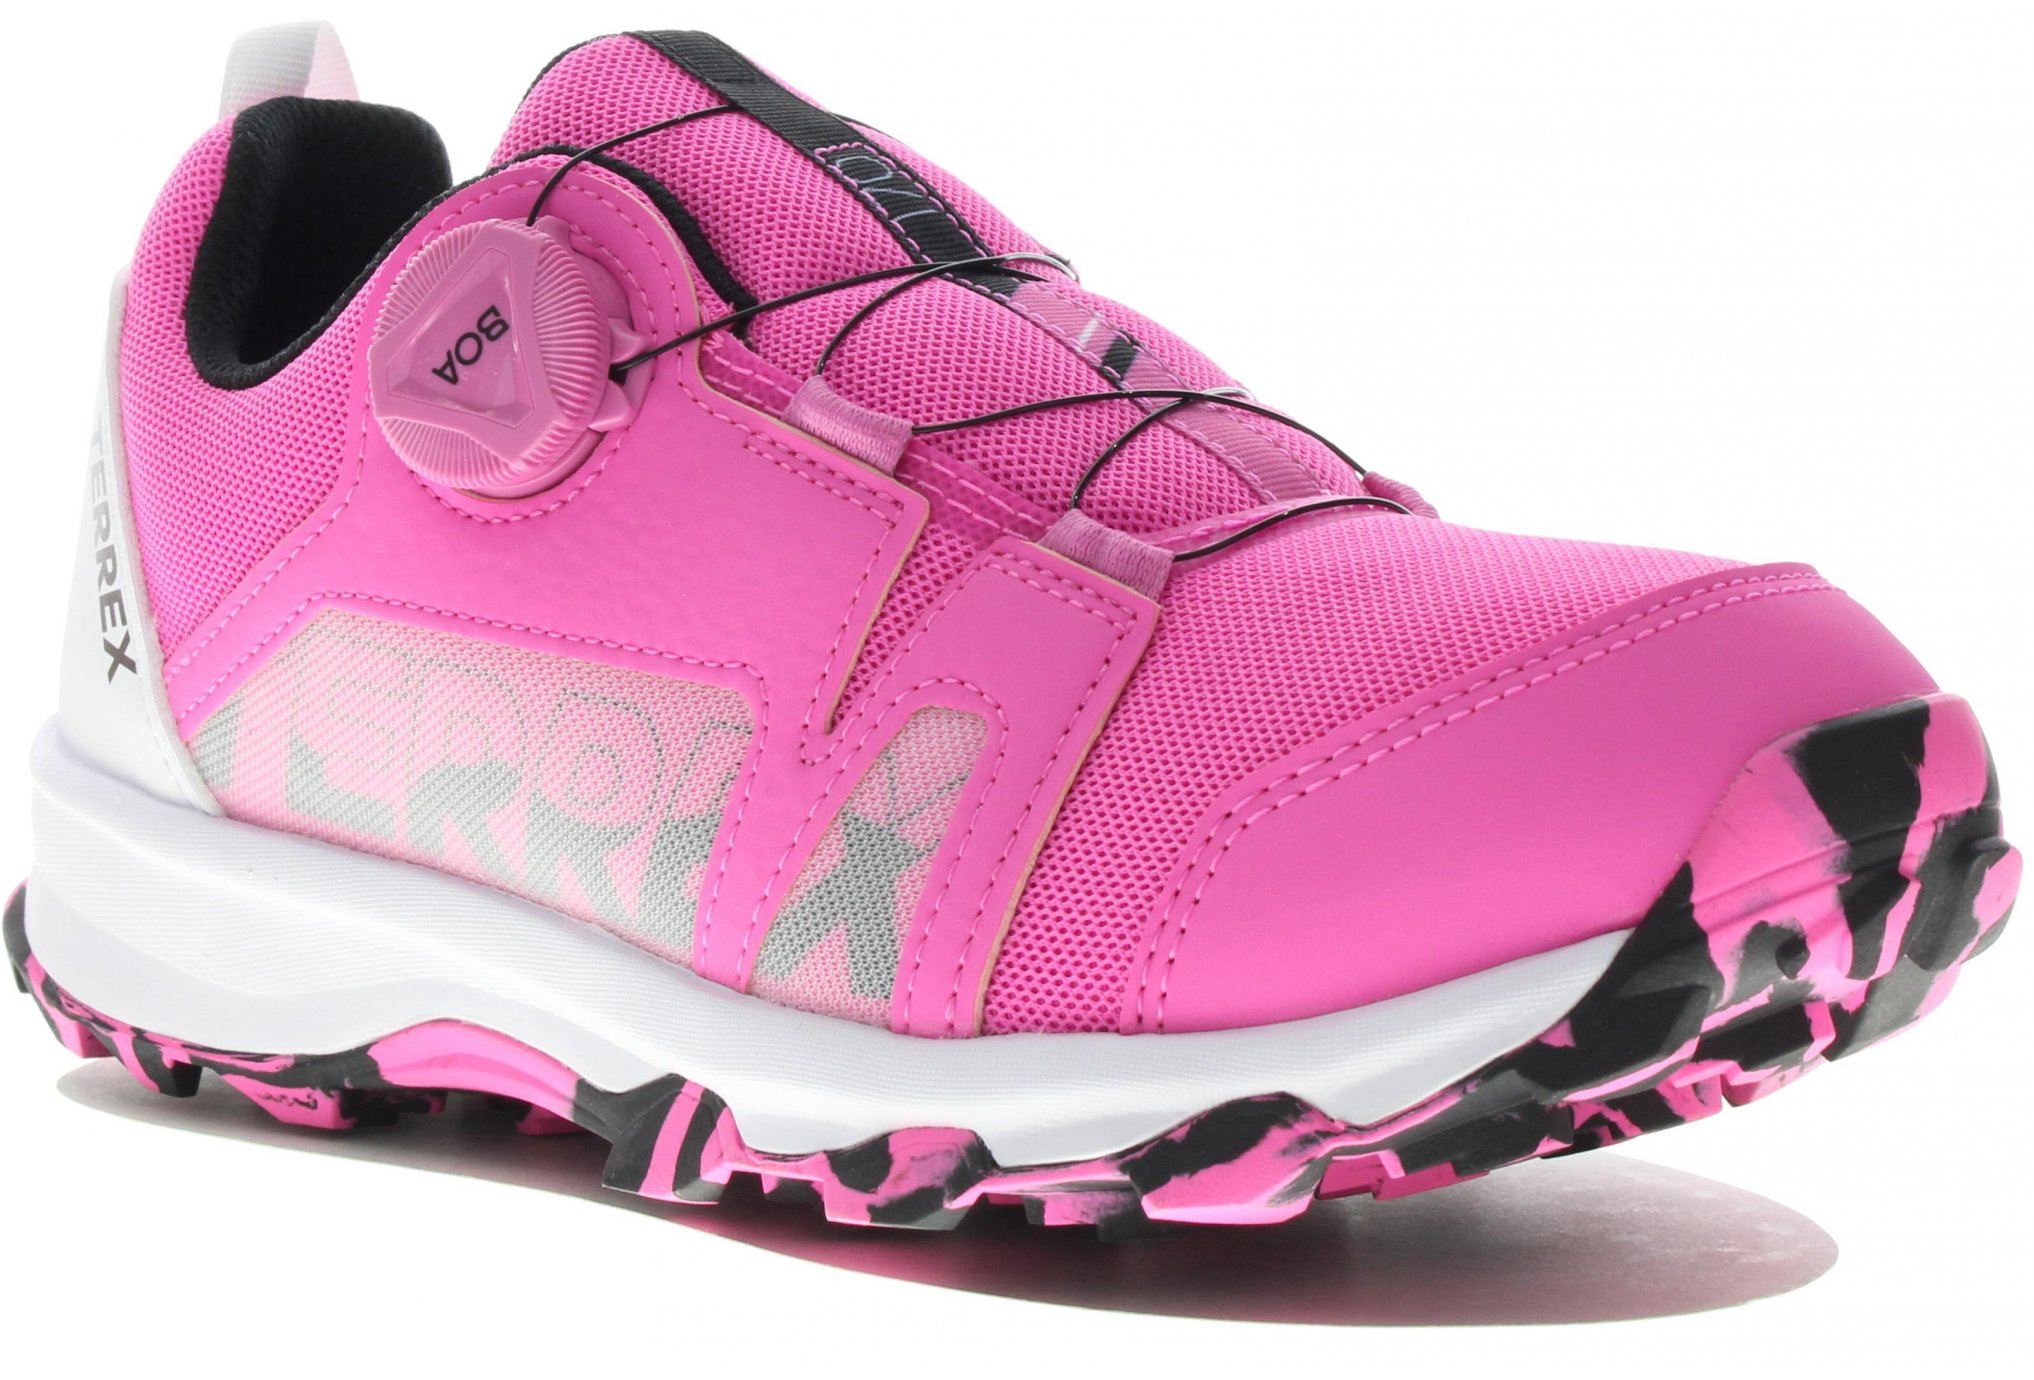 adidas Terrex Agravic BOA Fille Chaussures running femme